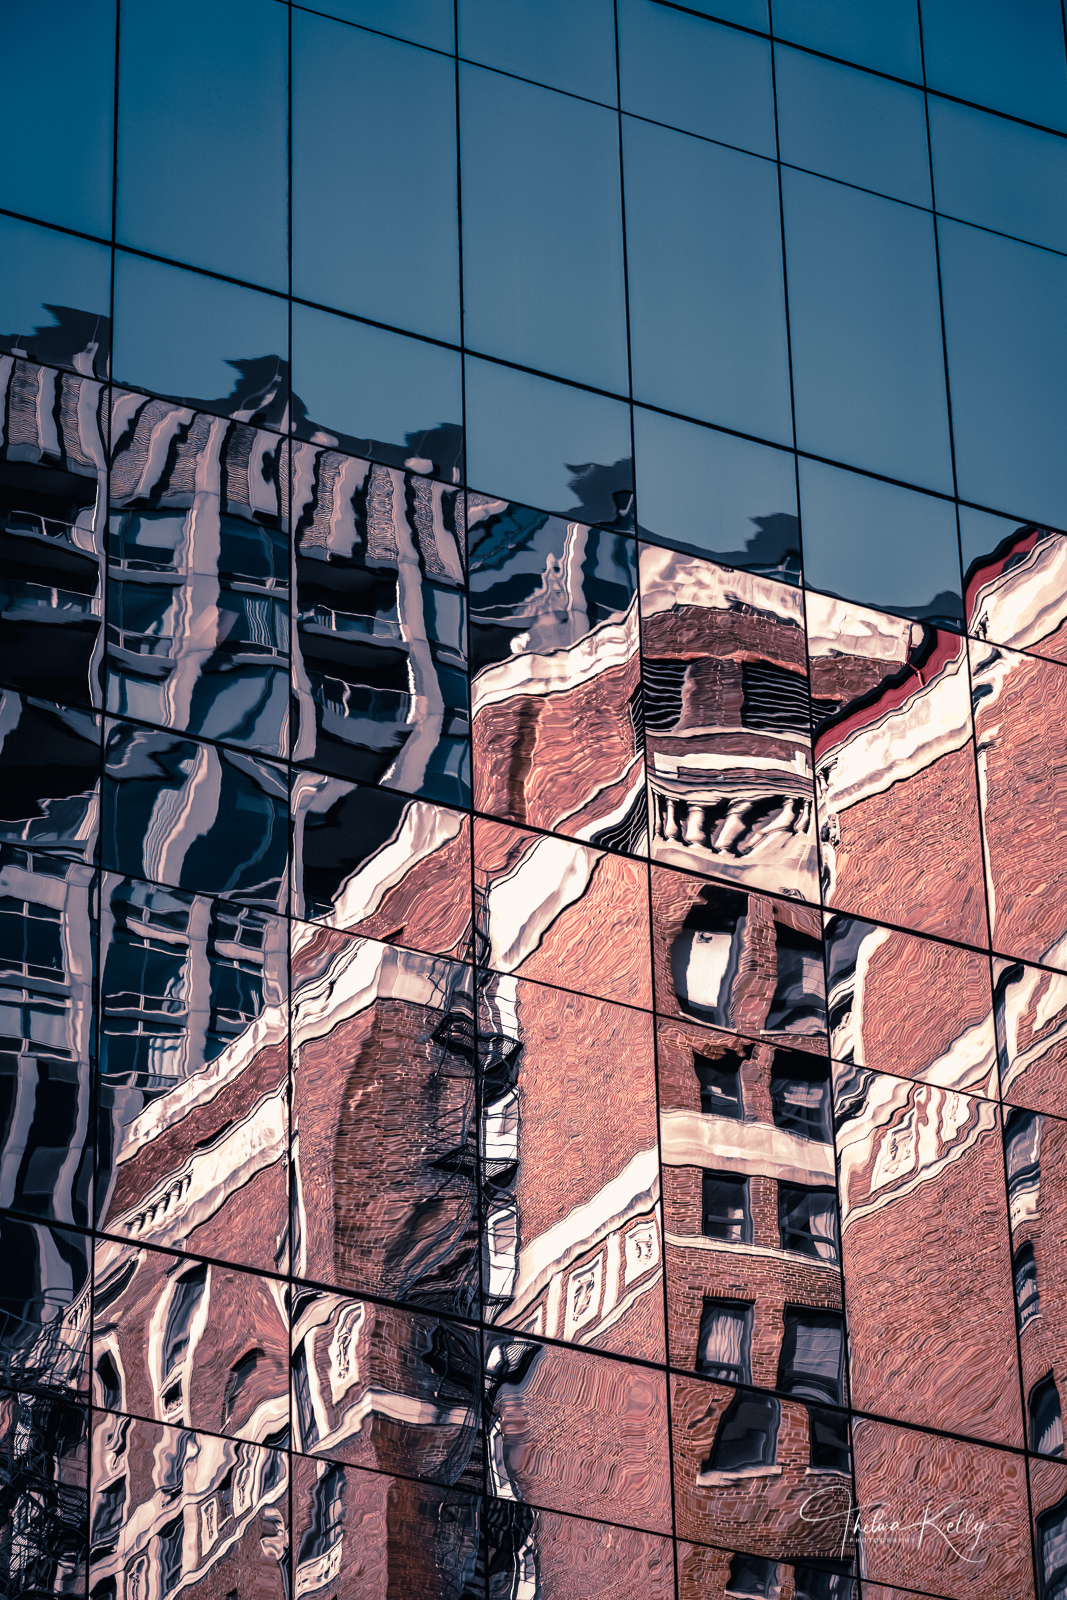 When old red brick buildings meet new glass covered skyscrapers the effect can be quite dazzling!